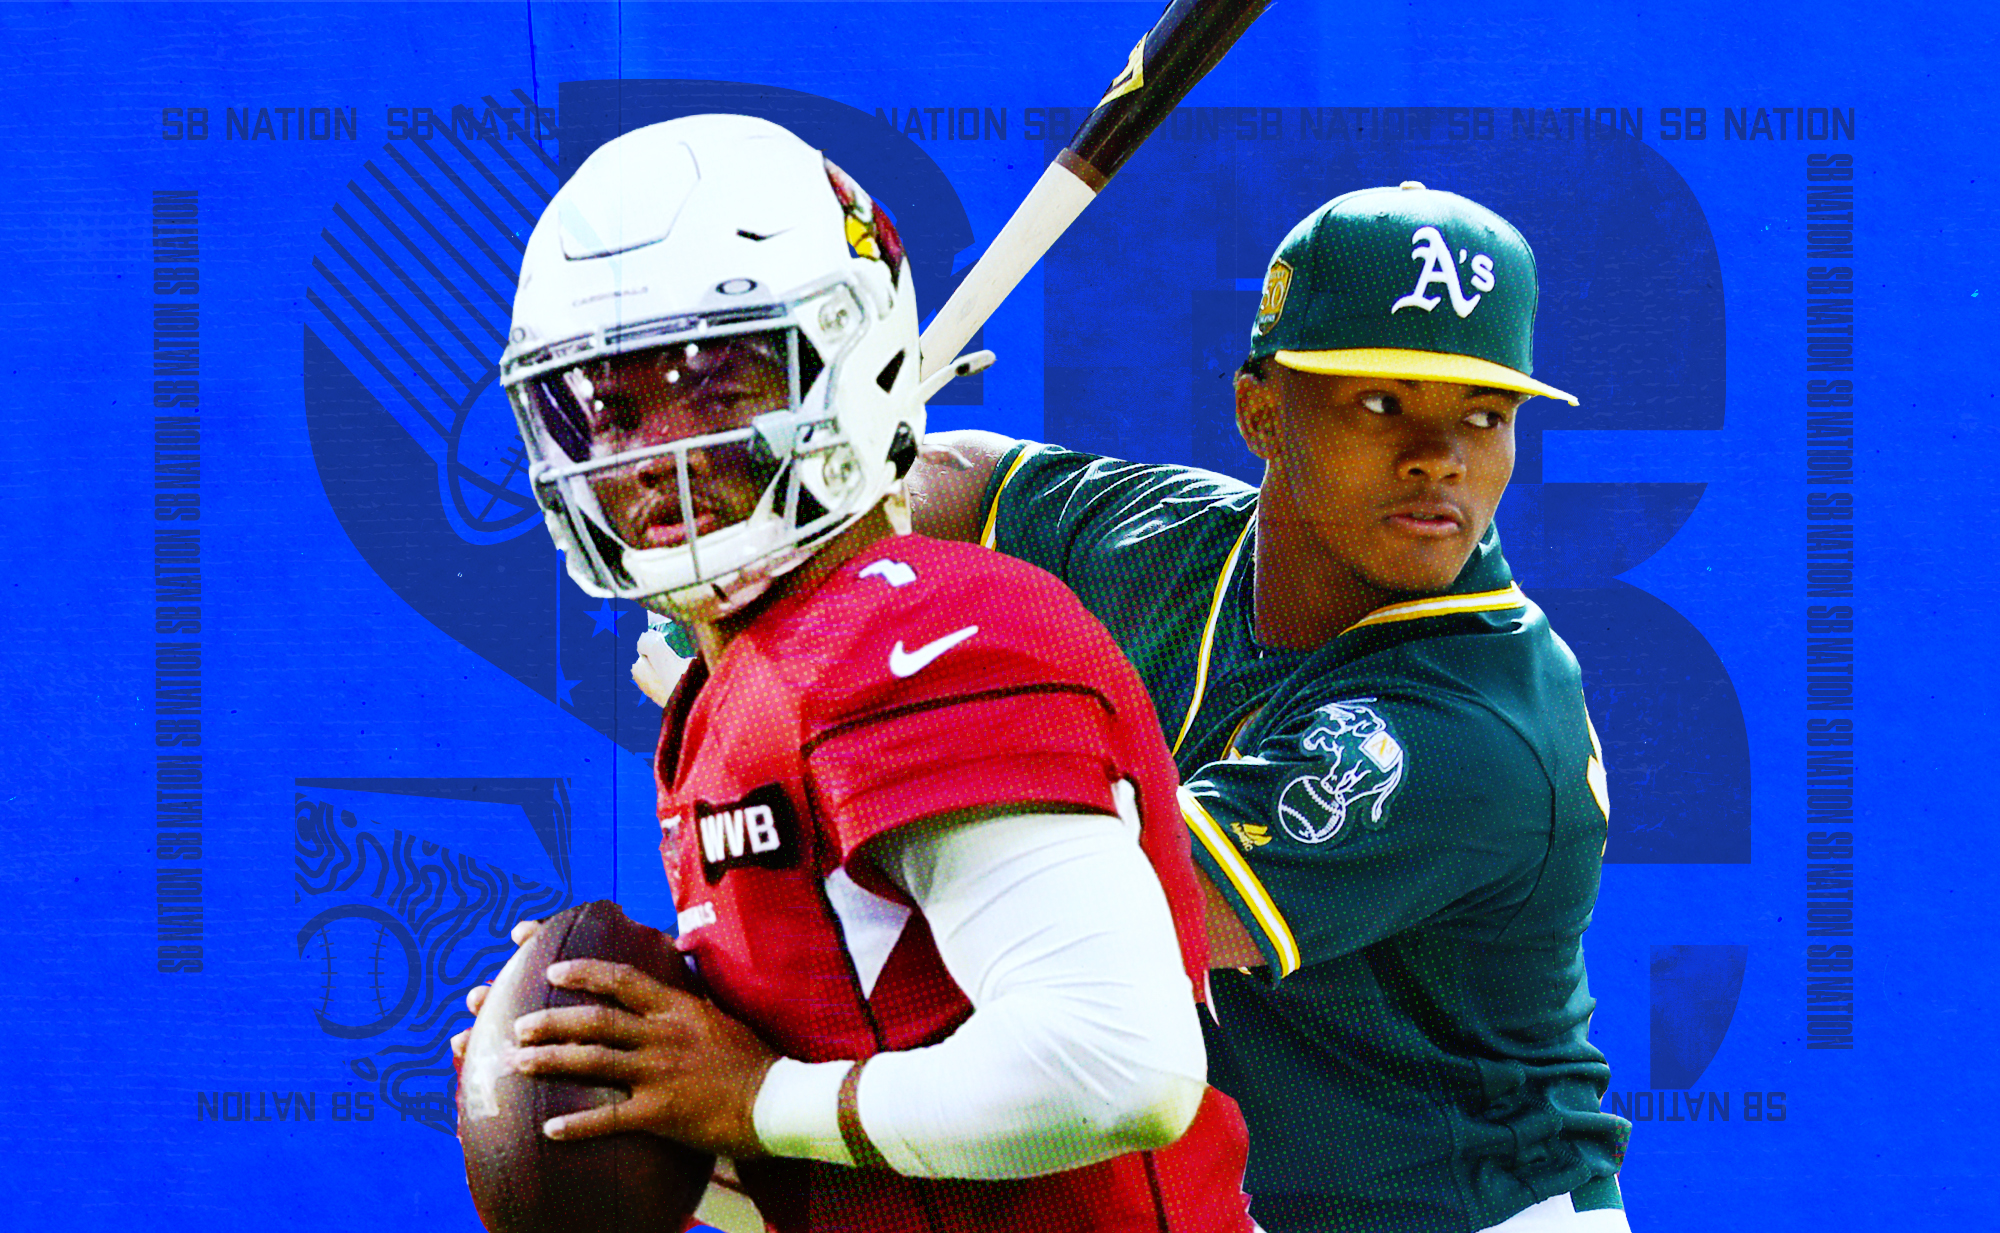 Could Kyler Murray actually play in the NFL and MLB at the same time?